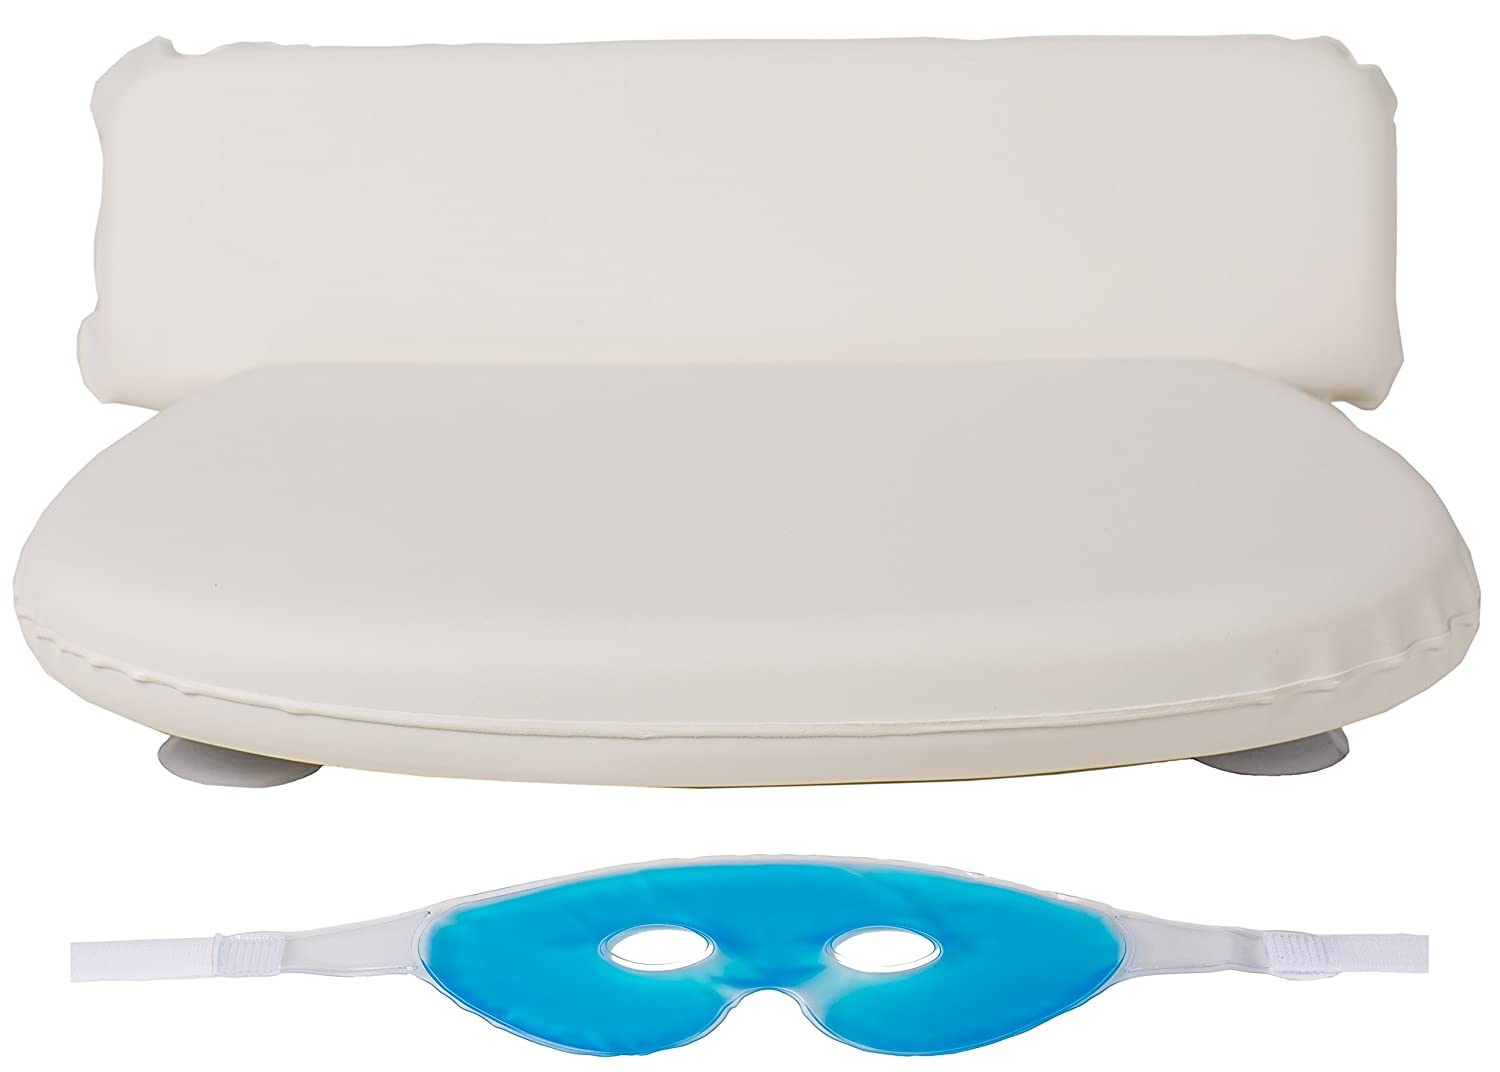 Serenity Now Bath Pillow